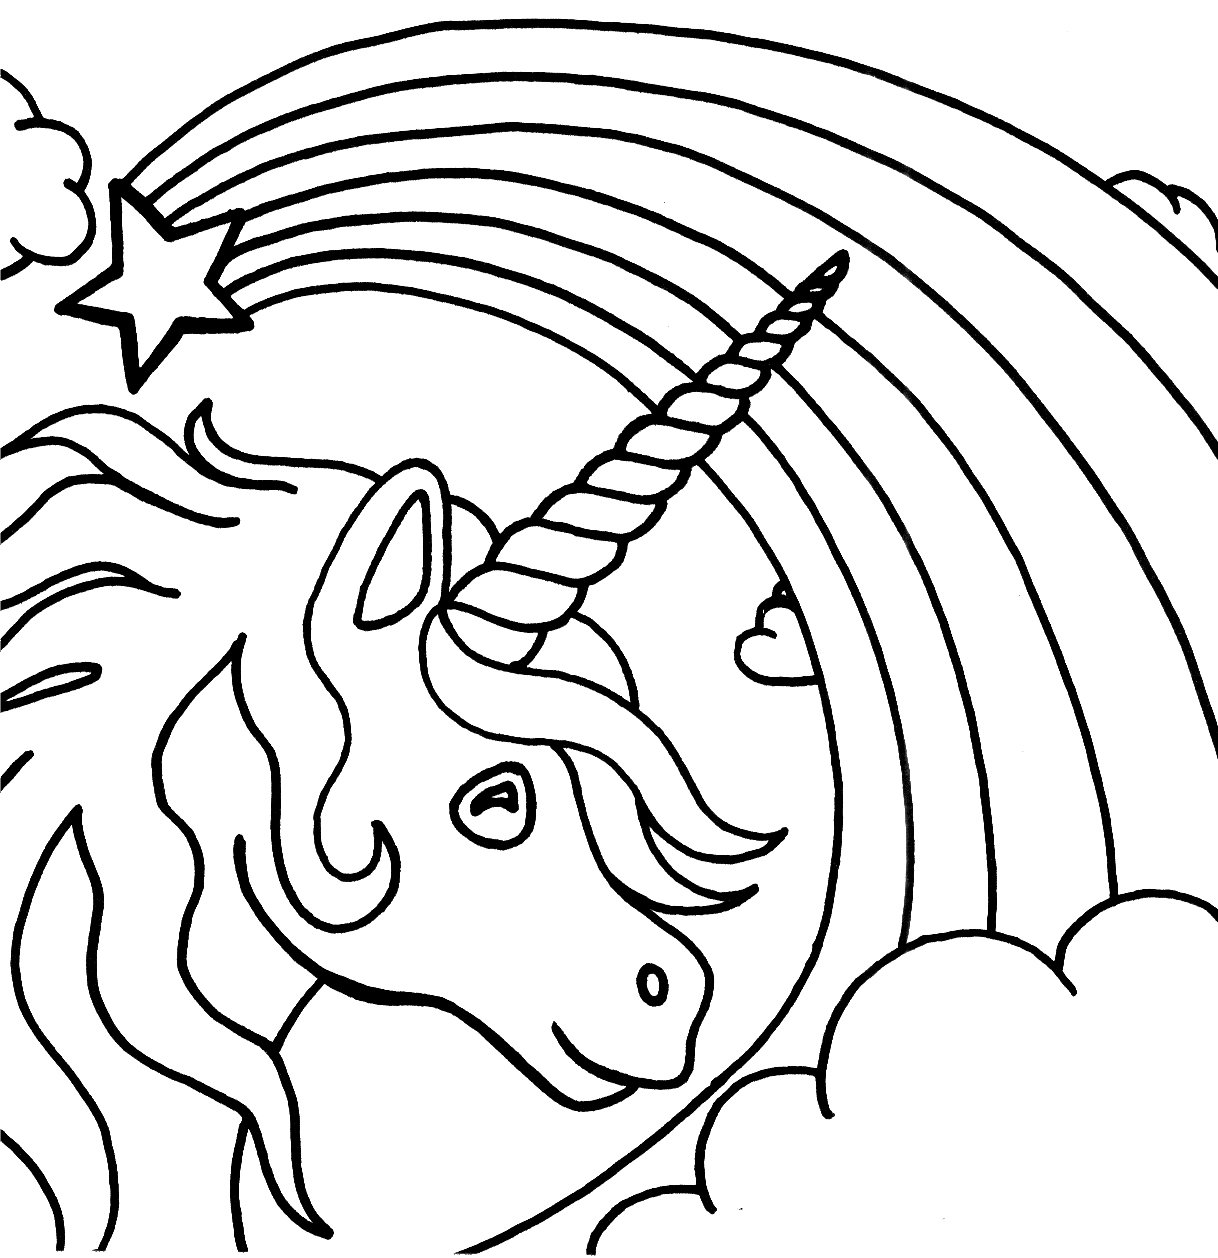 Unicorn Rainbow Coloring Pages 30845,